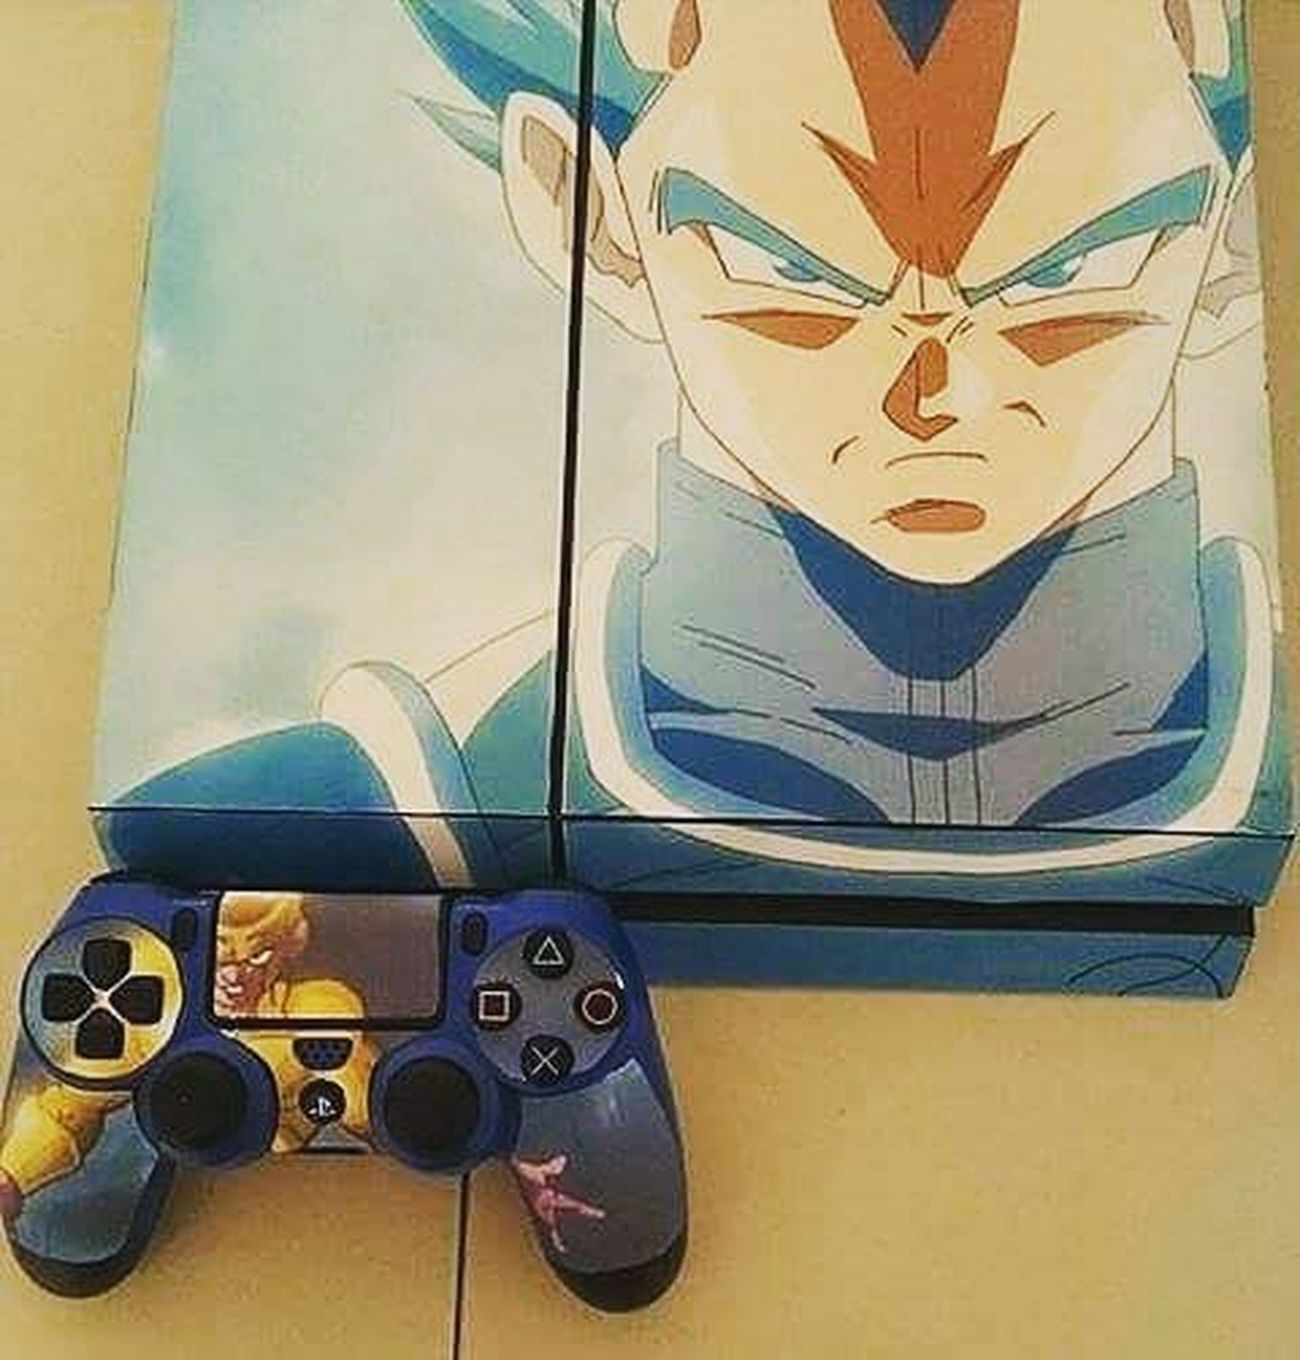 Dream😢😢 PS4 Graphics😍 Vegeta_super_saiyan Dragonballevolution Gaminglife Dualshock4 . 😳😳